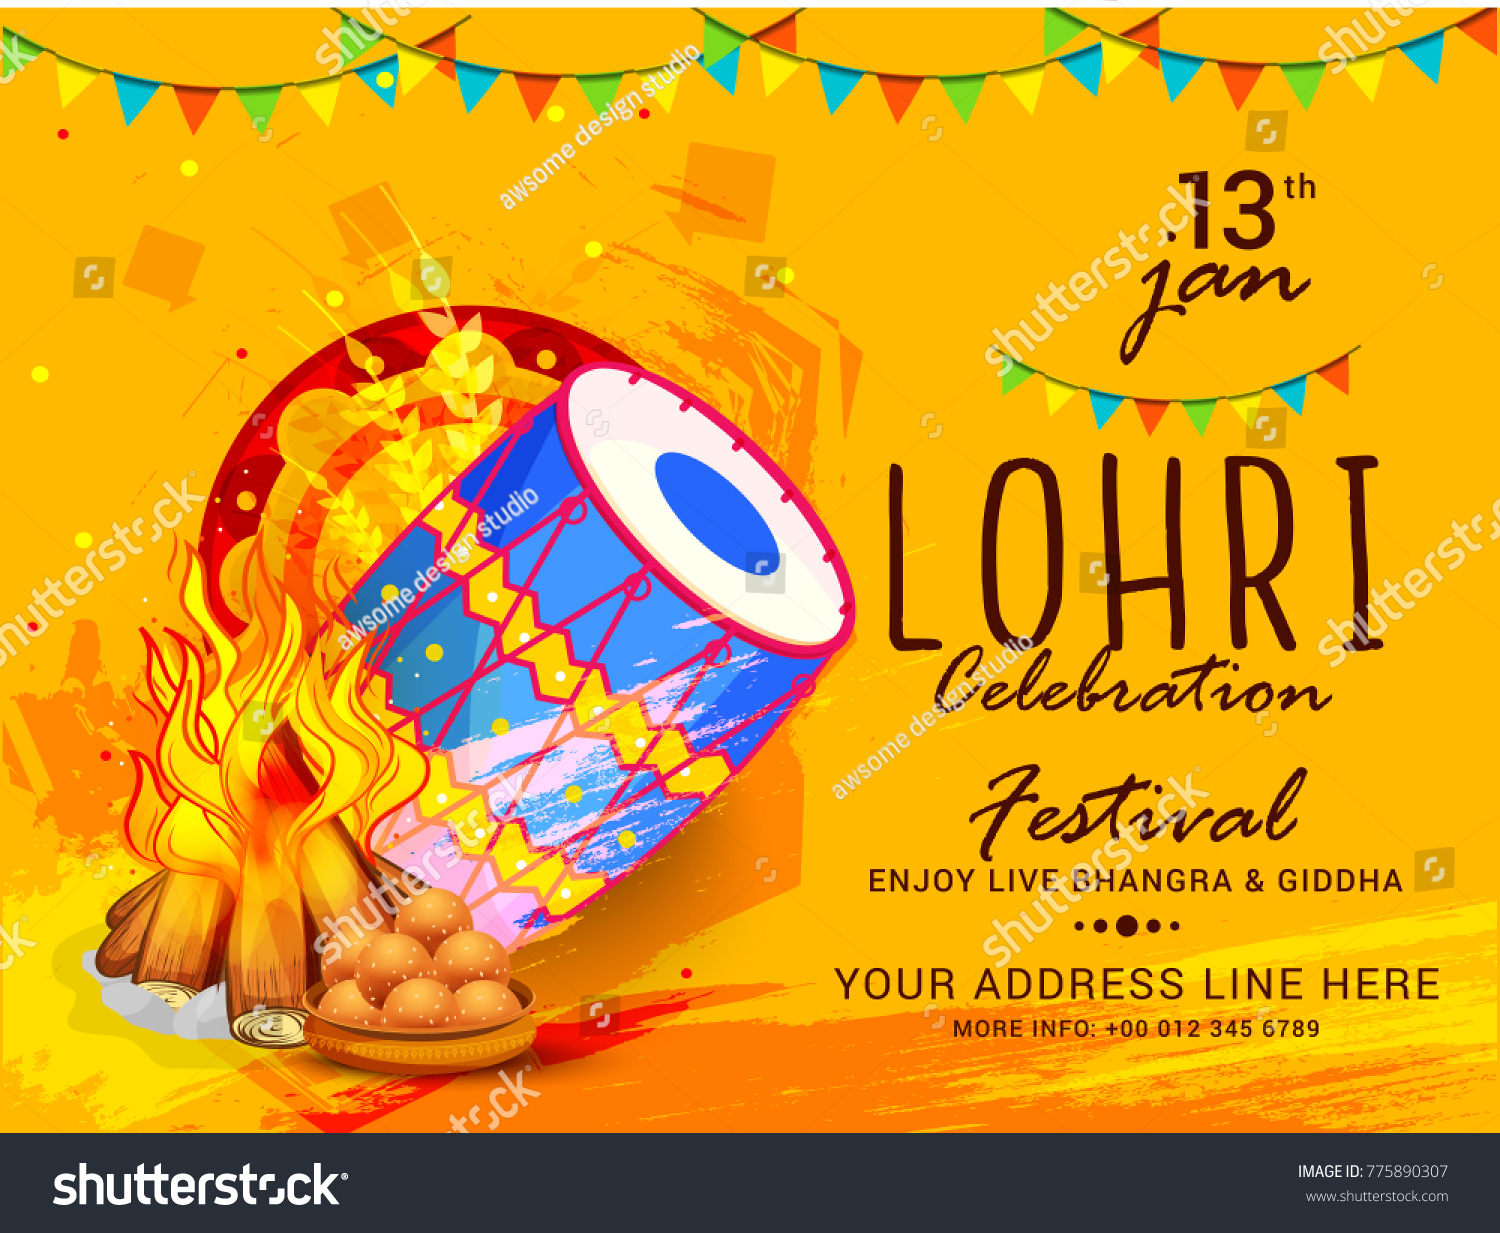 lohri invitation cards wordings